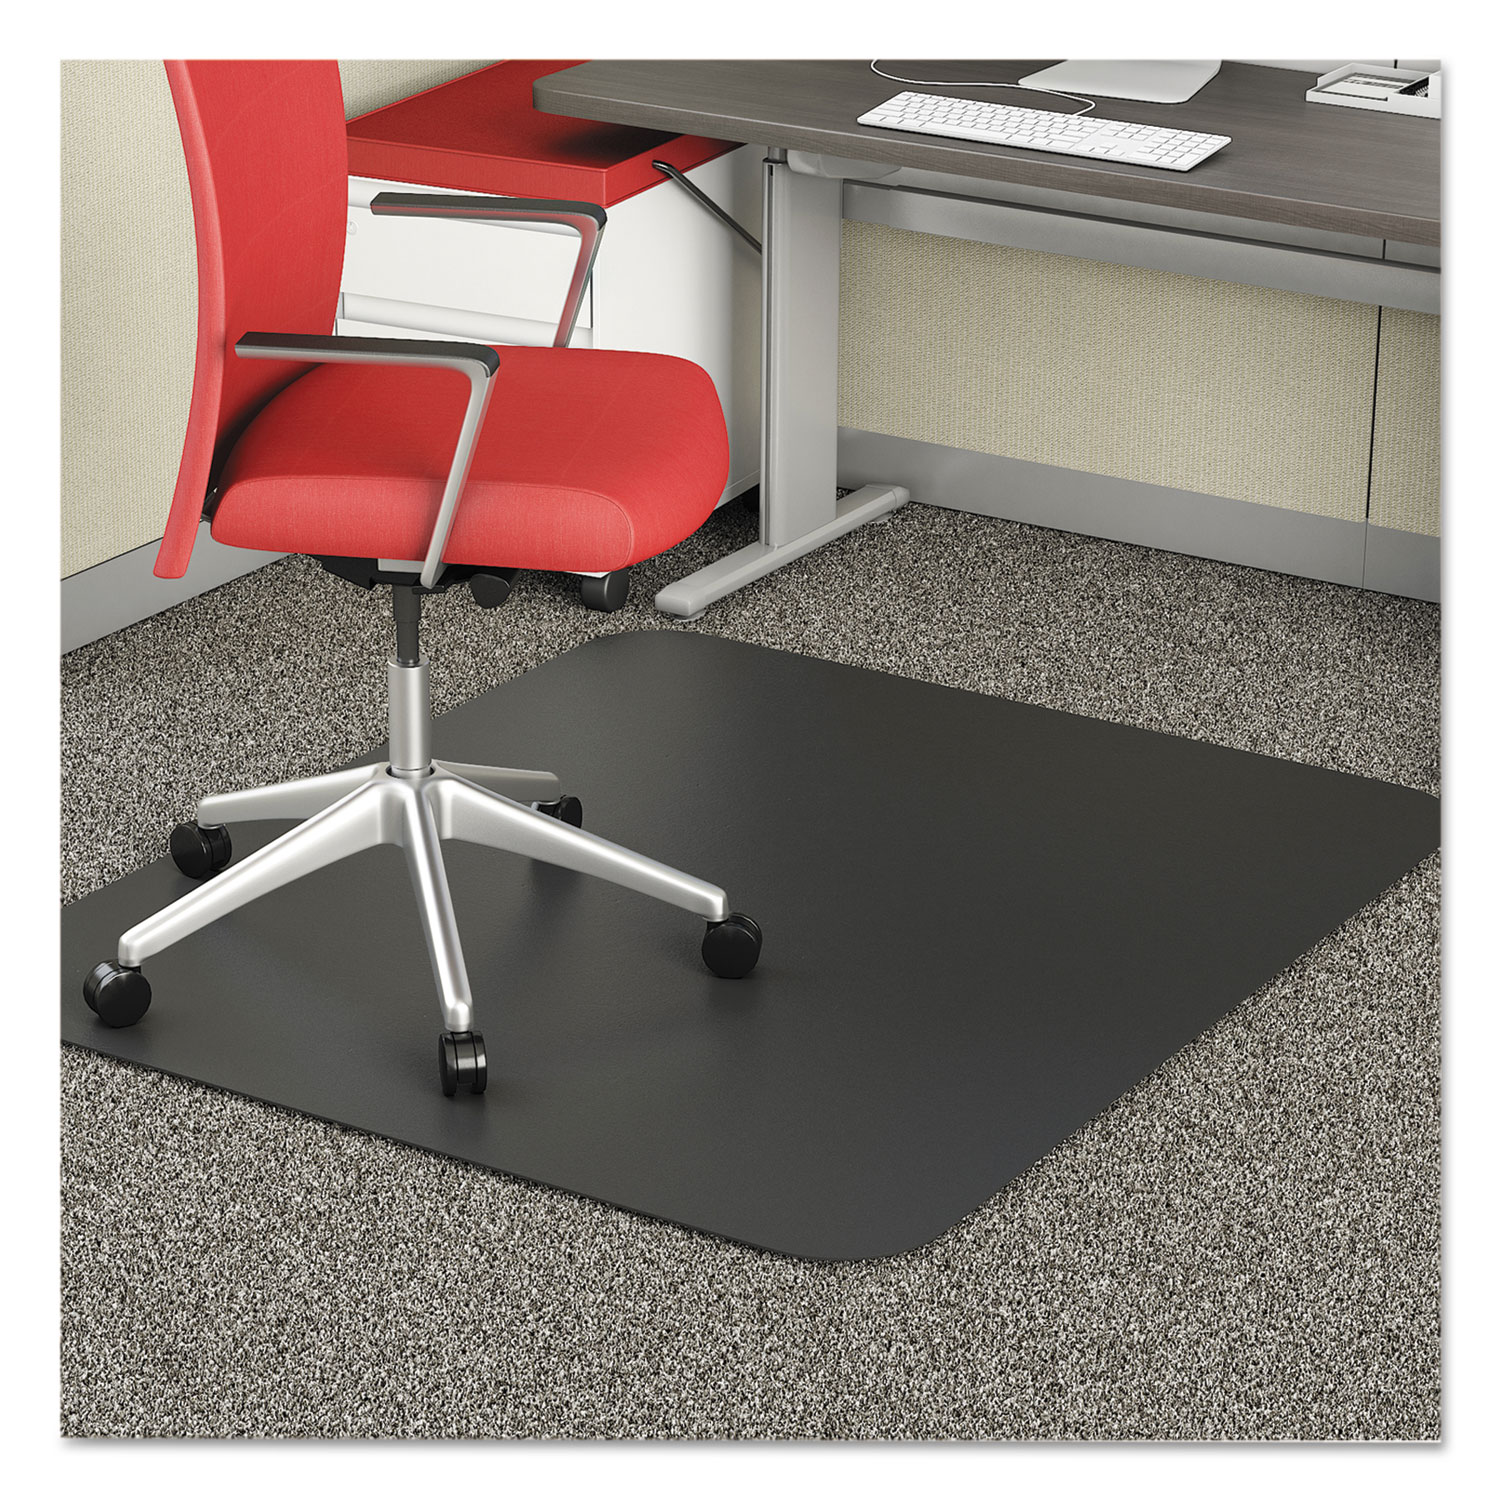 office chair mat 36 x 60 hot pink spandex covers economat occasional use for low pile by deflecto